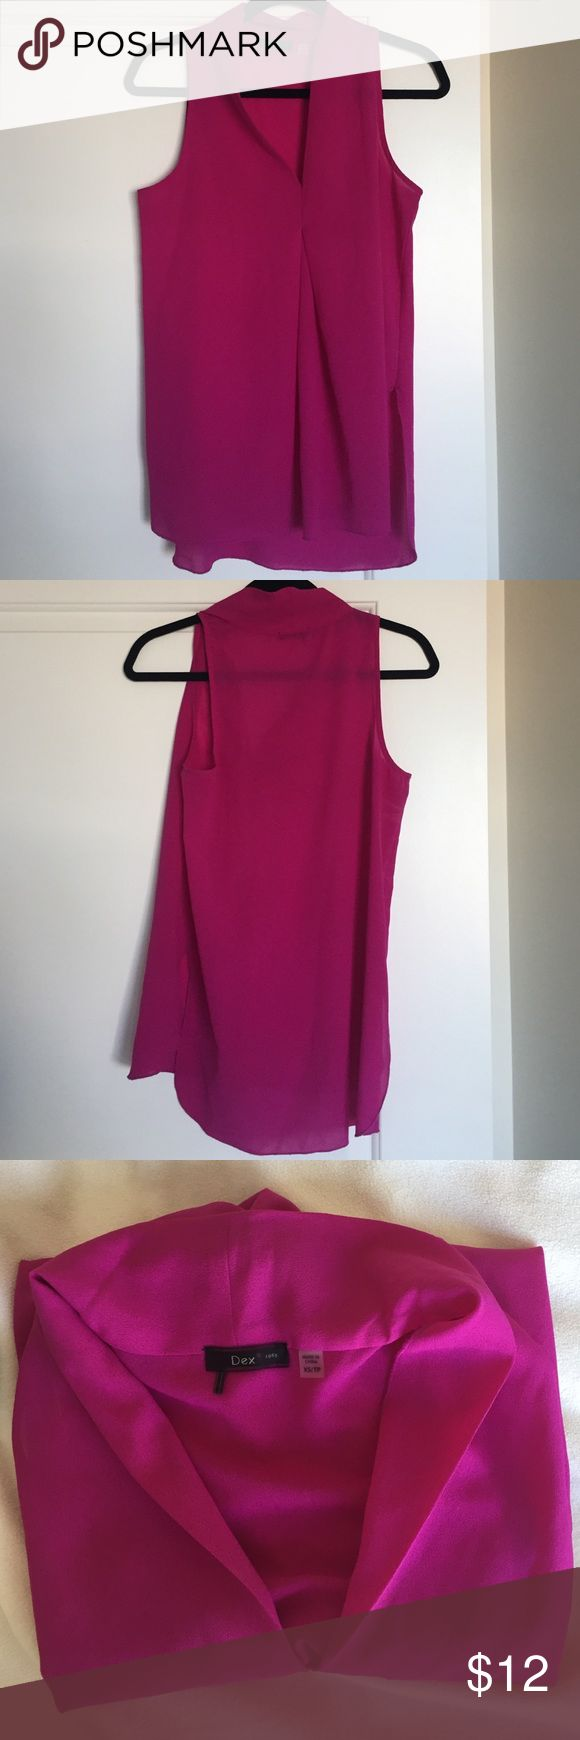 NM LAST CALL Dex fuchsia blouse Very vibrant fuchsia blouse! Runs big so could fit a S/M. Gathered in the front. Neiman Marcus Tops Blouses